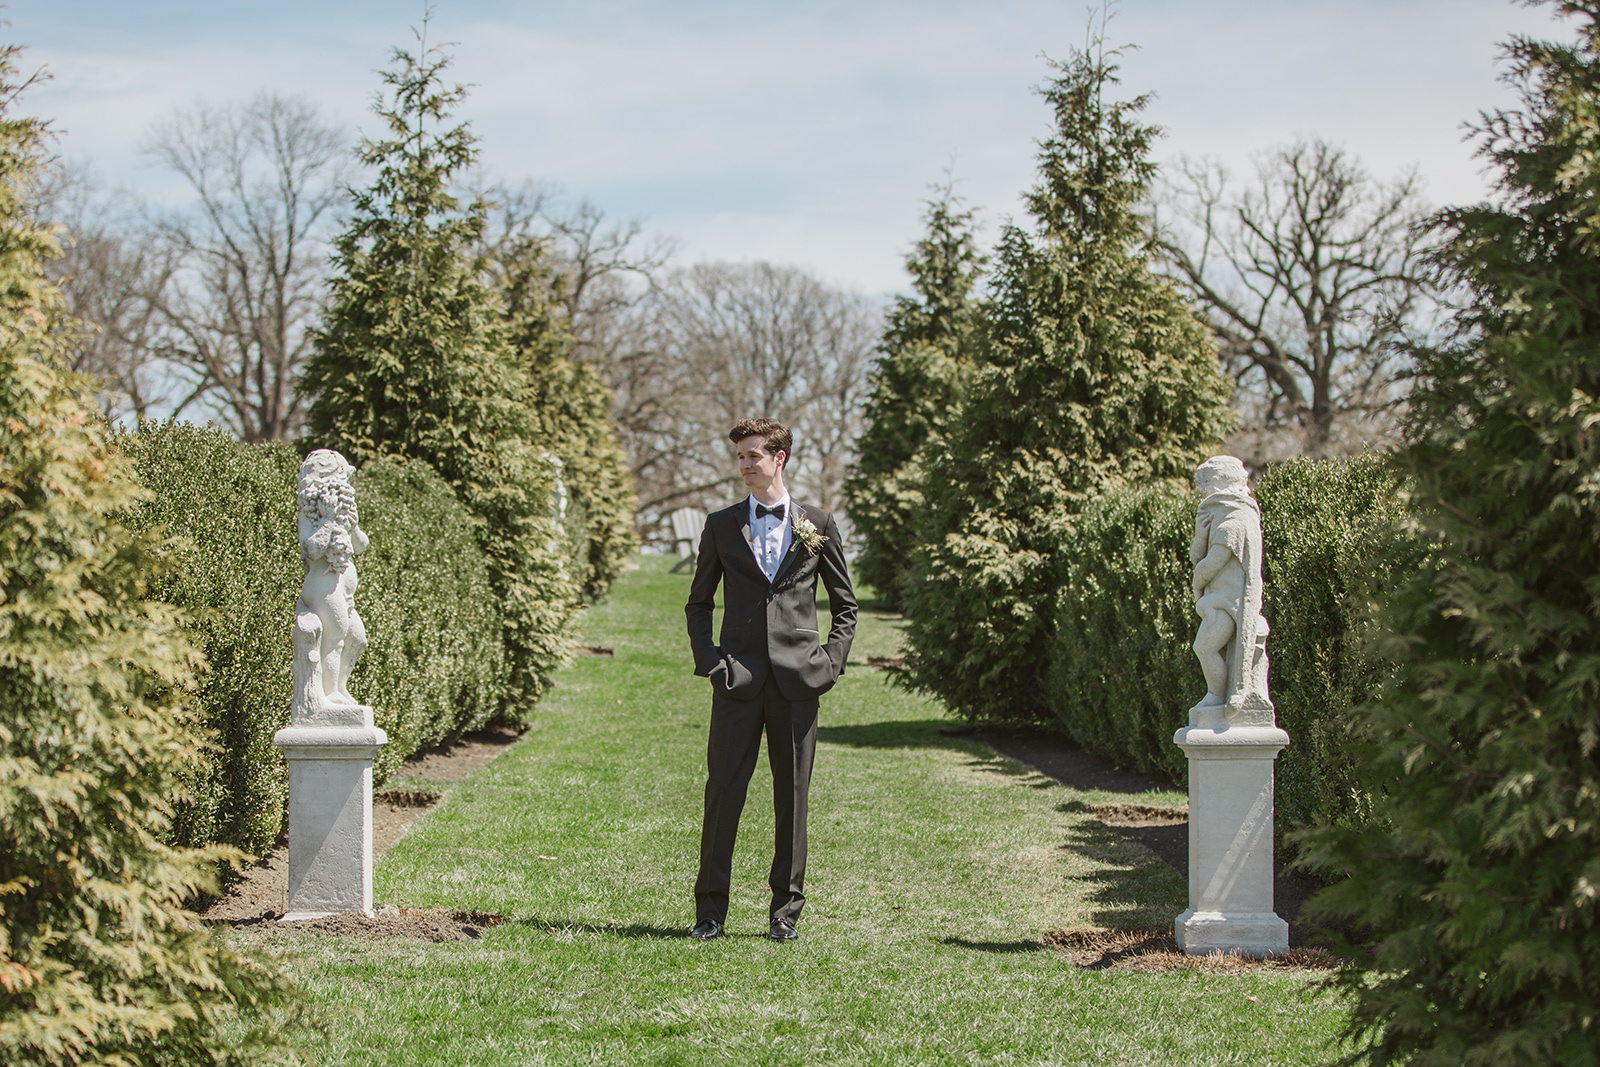 Groom in a slim black Tuxedo from Formally Modern Tuxedo at Elawa Farm in Lake Forest for a Chicago Spring Wedding